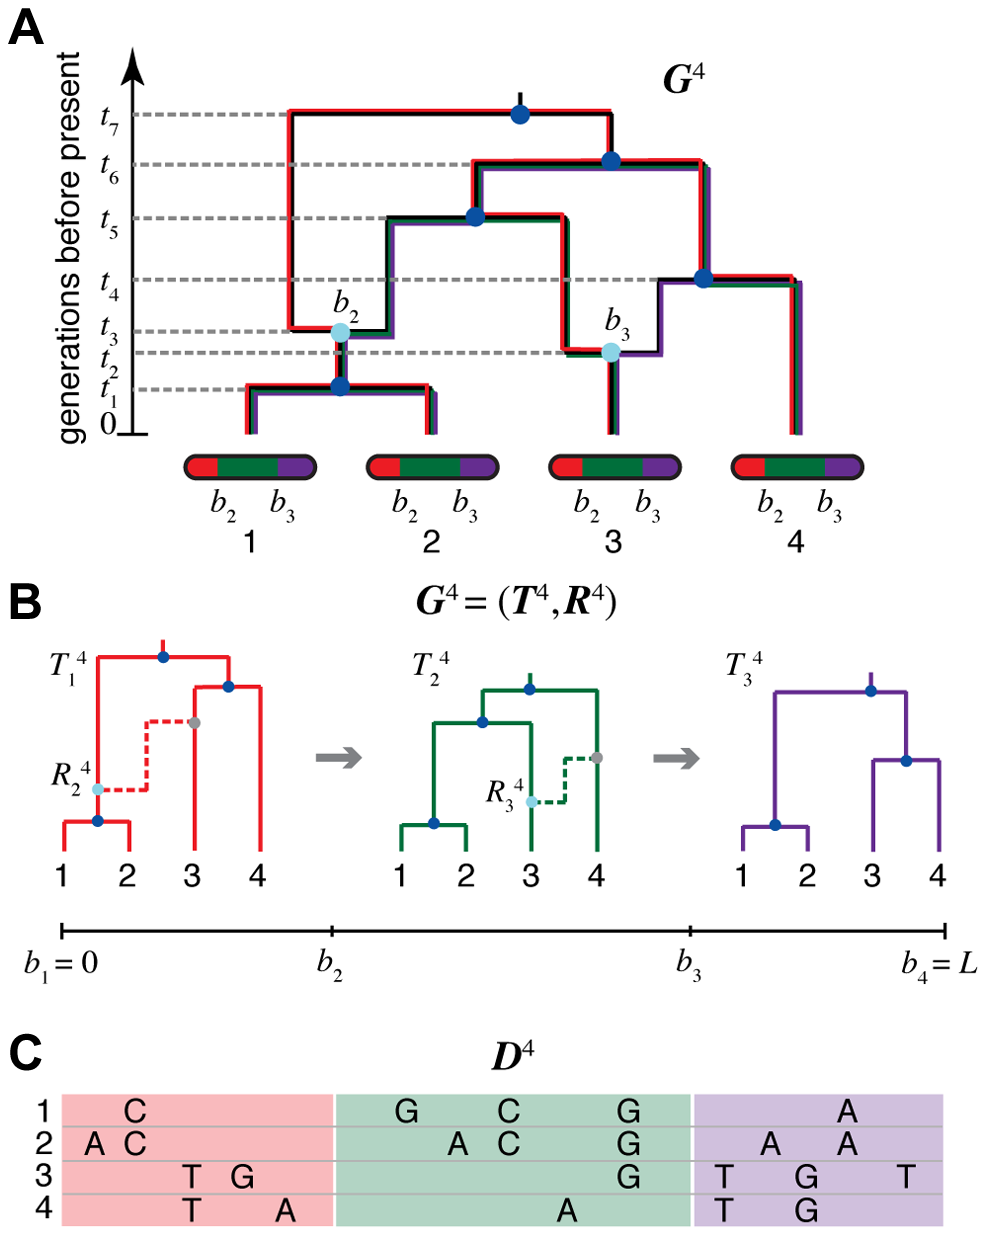 An ancestral recombination graph (ARG) for four sequences.